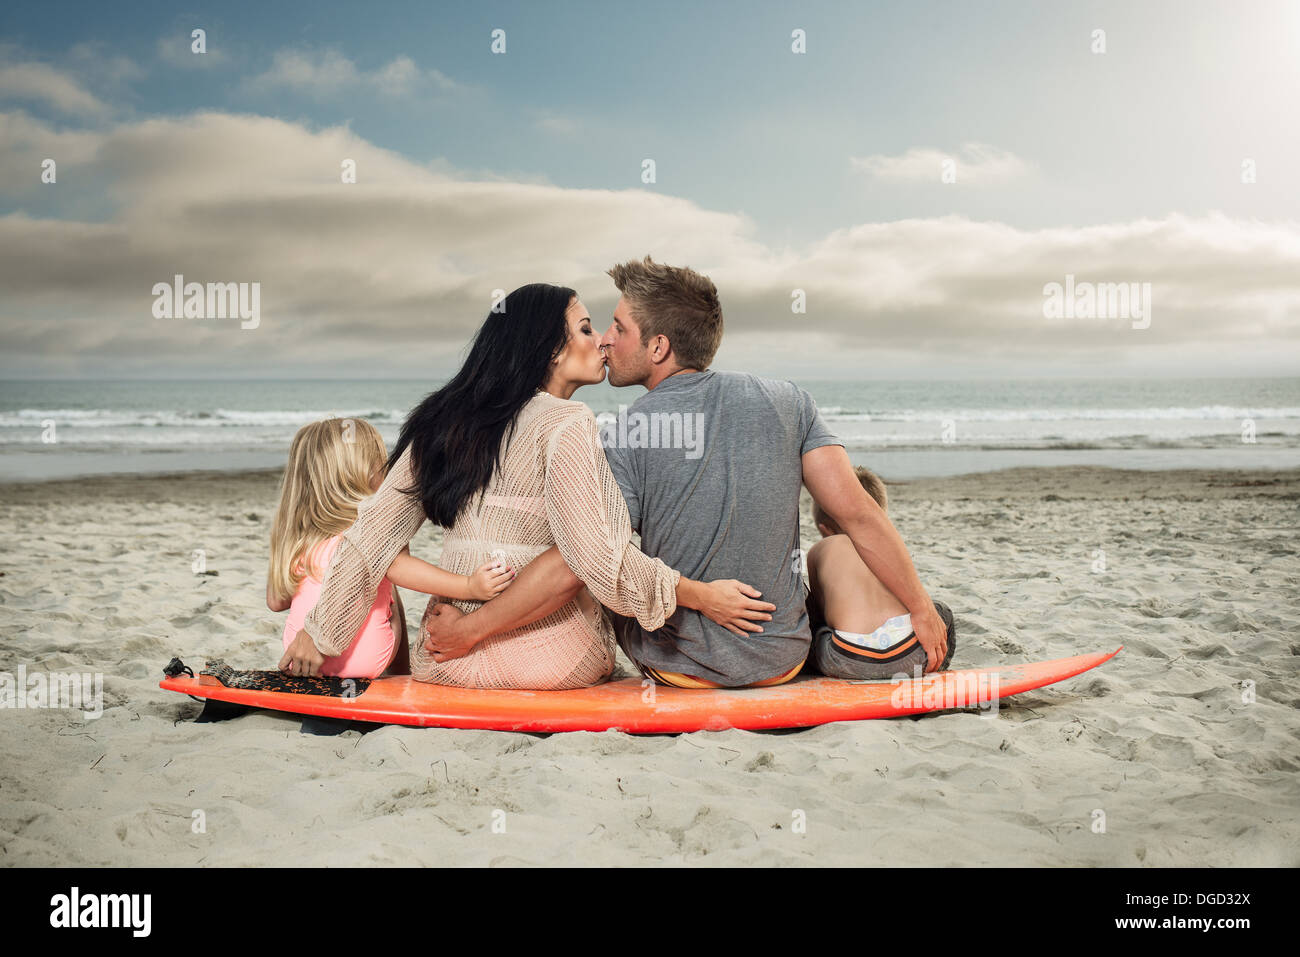 Young family sitting on surfboard on beach with parents kissing - Stock Image